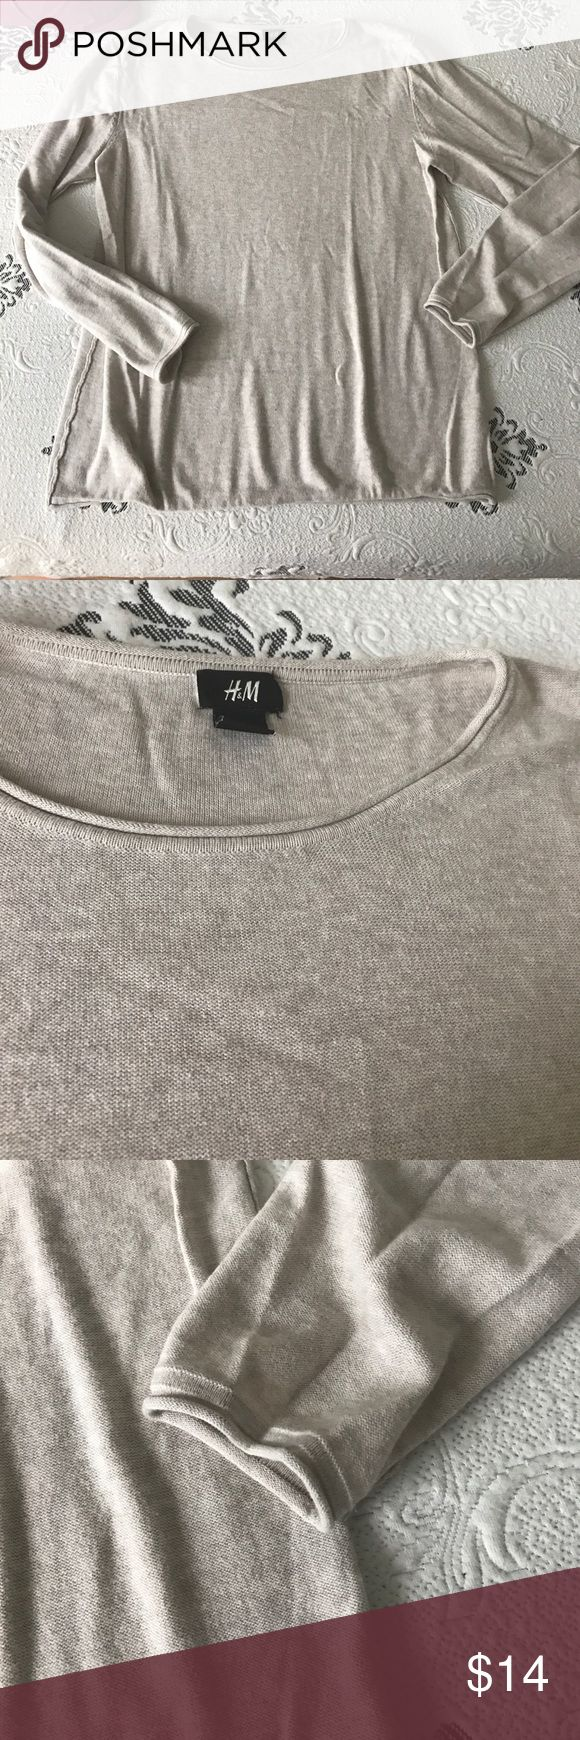 H&M men's cream sweater Works for women too, has a unisex look H&M Sweaters Crewneck